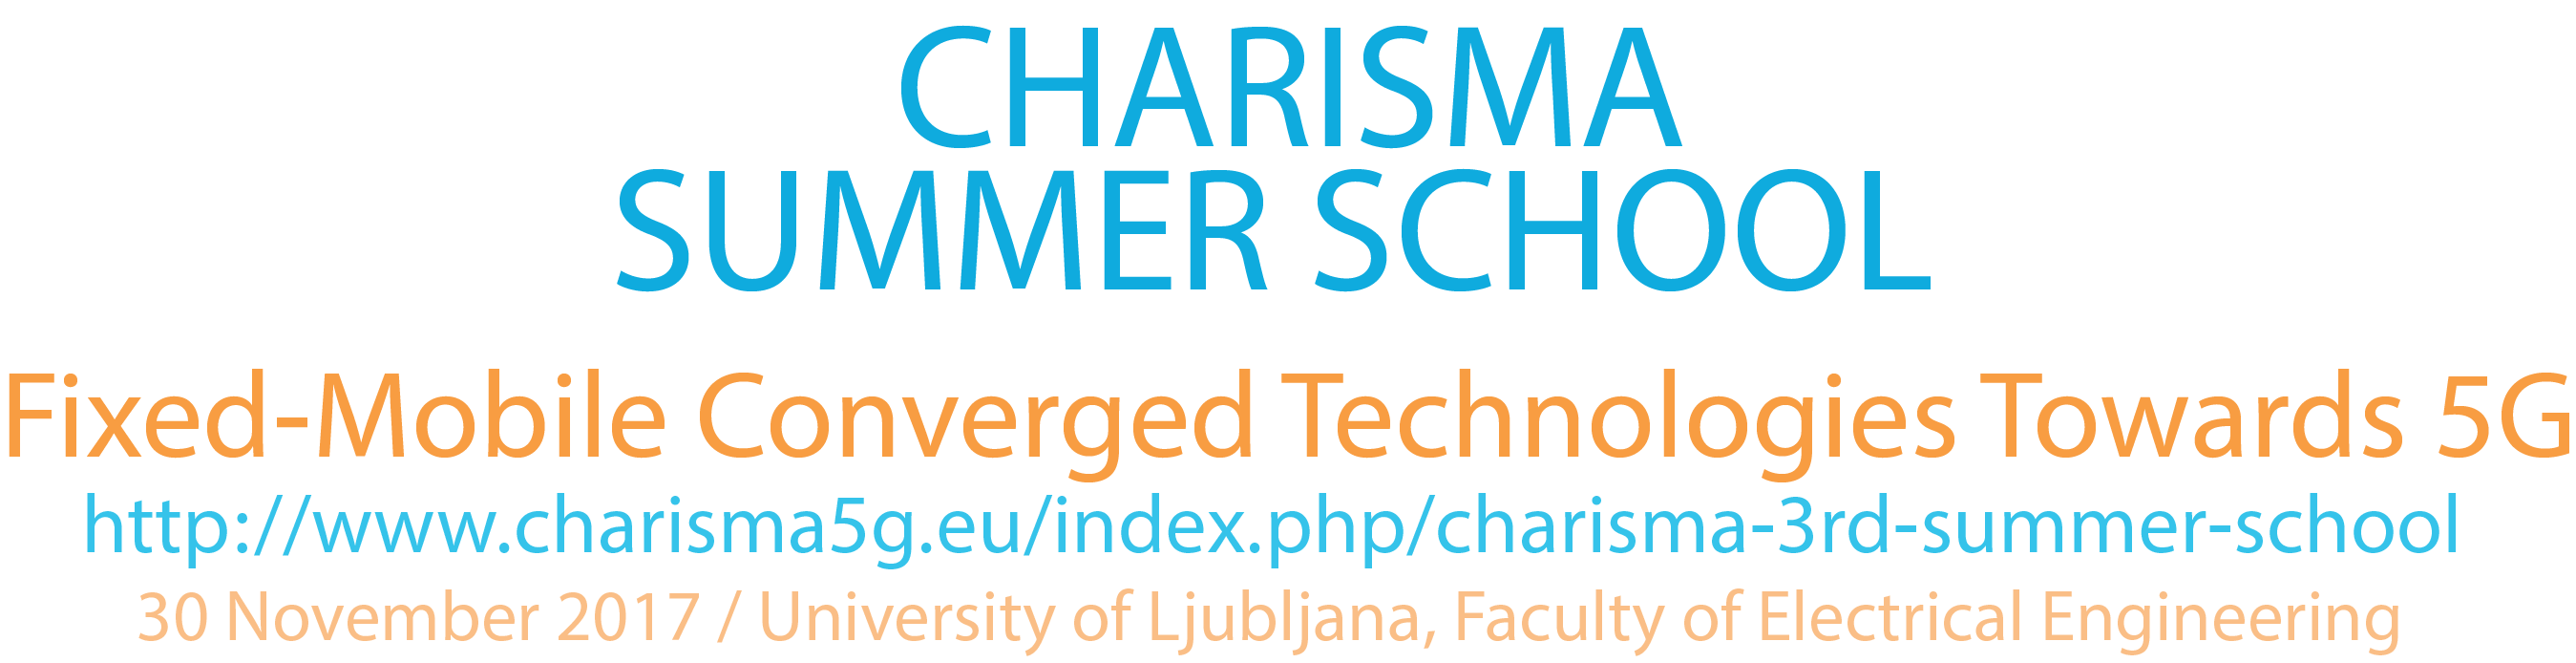 """CHARISMA Summer School """"Fixed-Mobile Convergence in 5G Networking"""""""